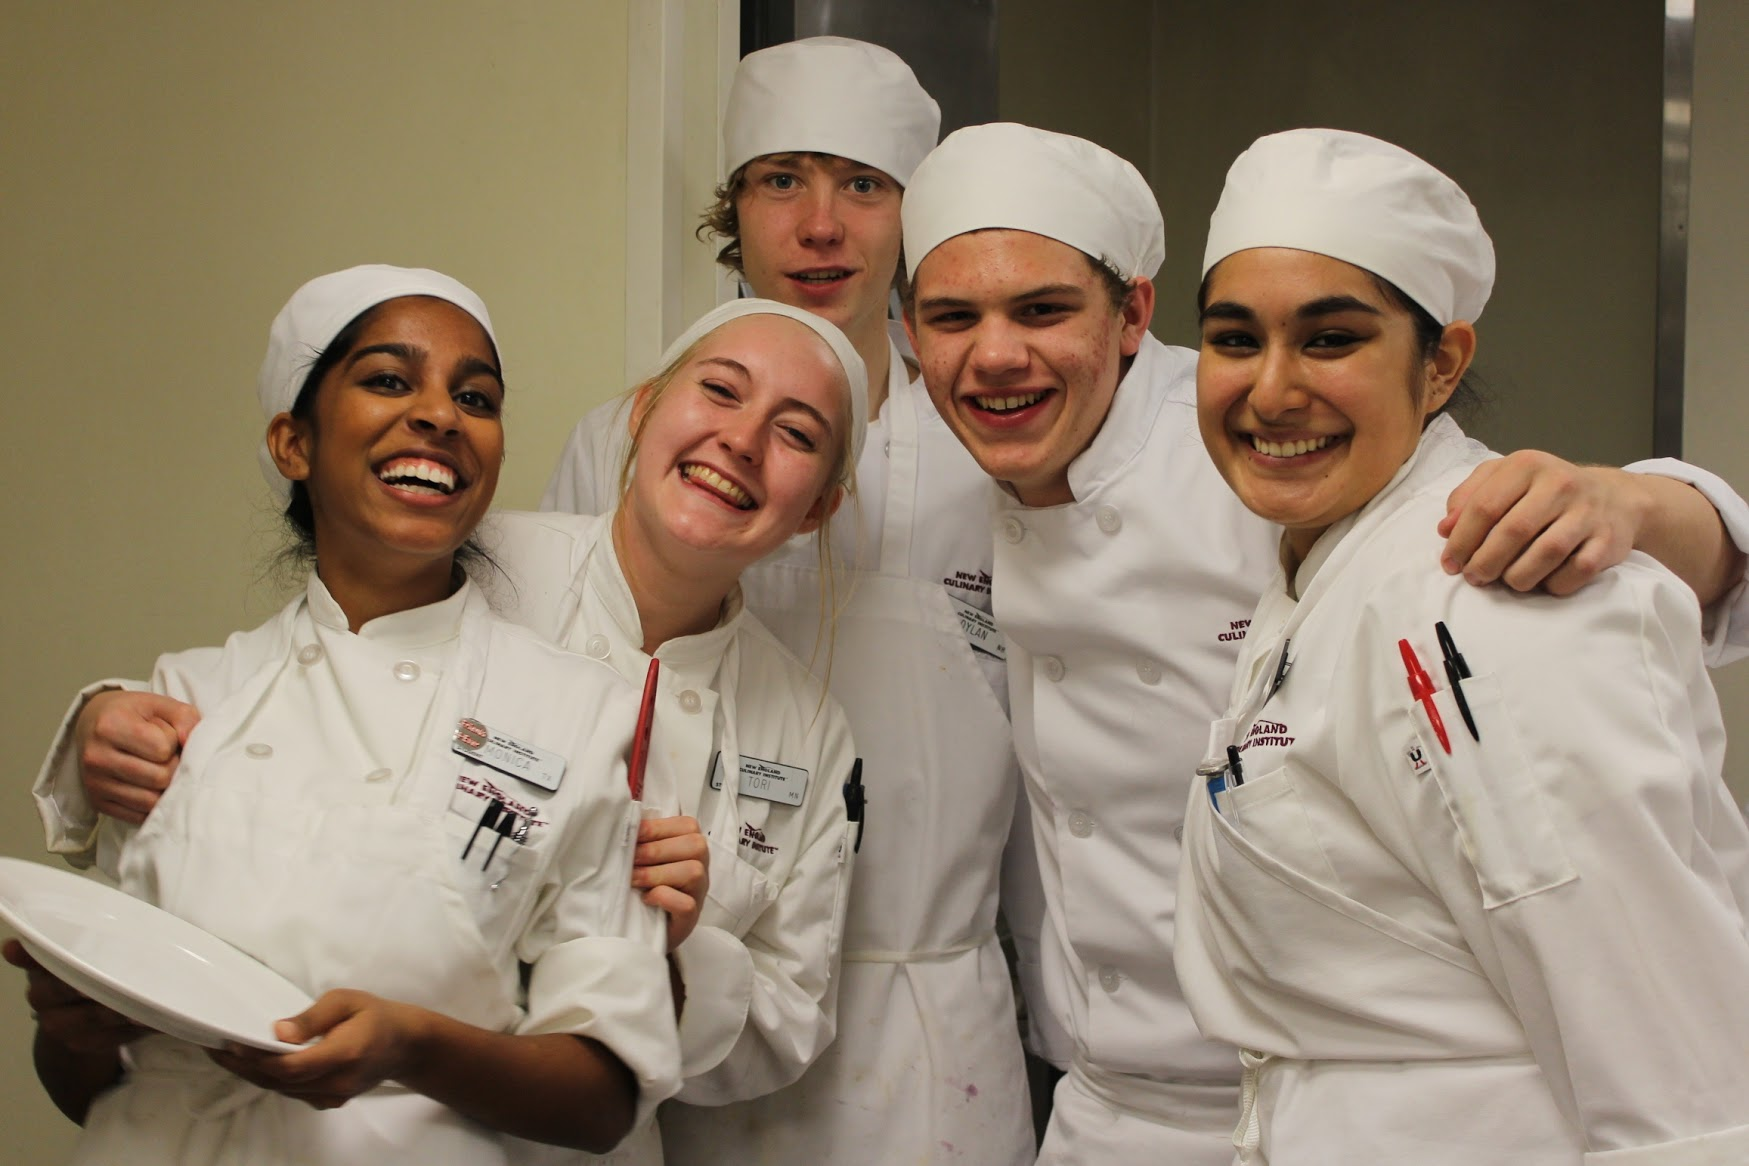 Five smiling students chefs pose for the camera